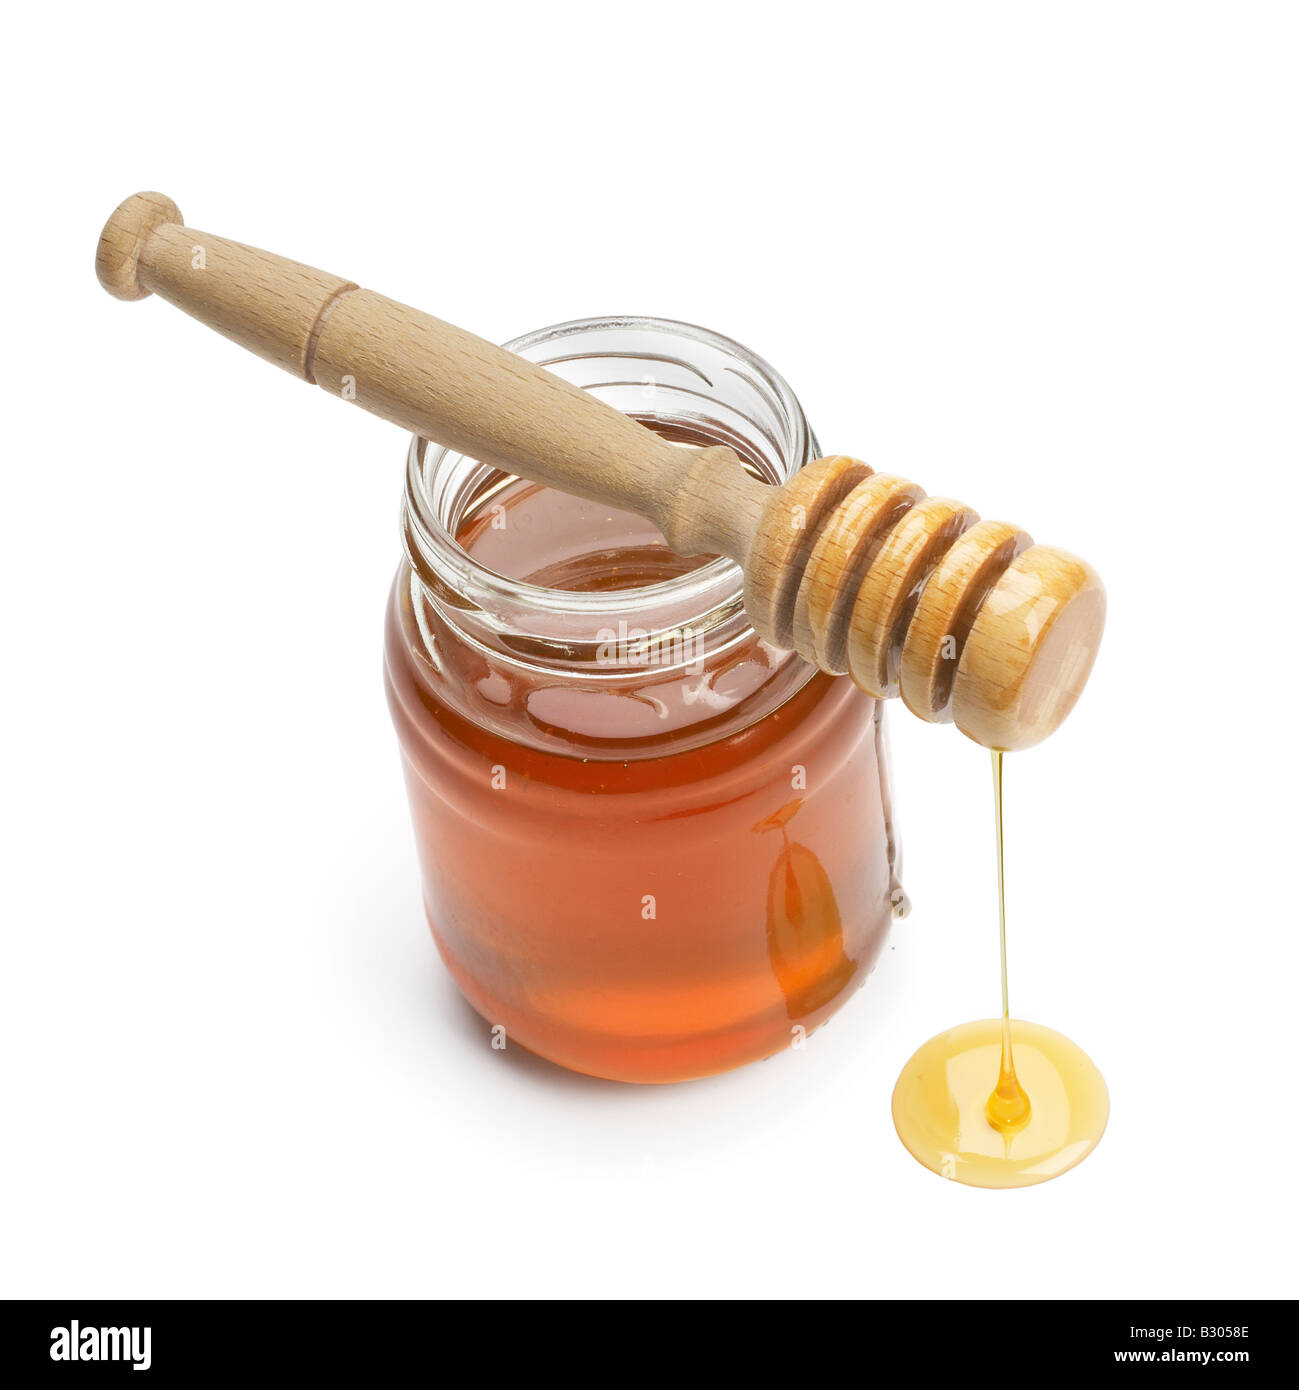 Jar of honey with drizzler - Stock Image